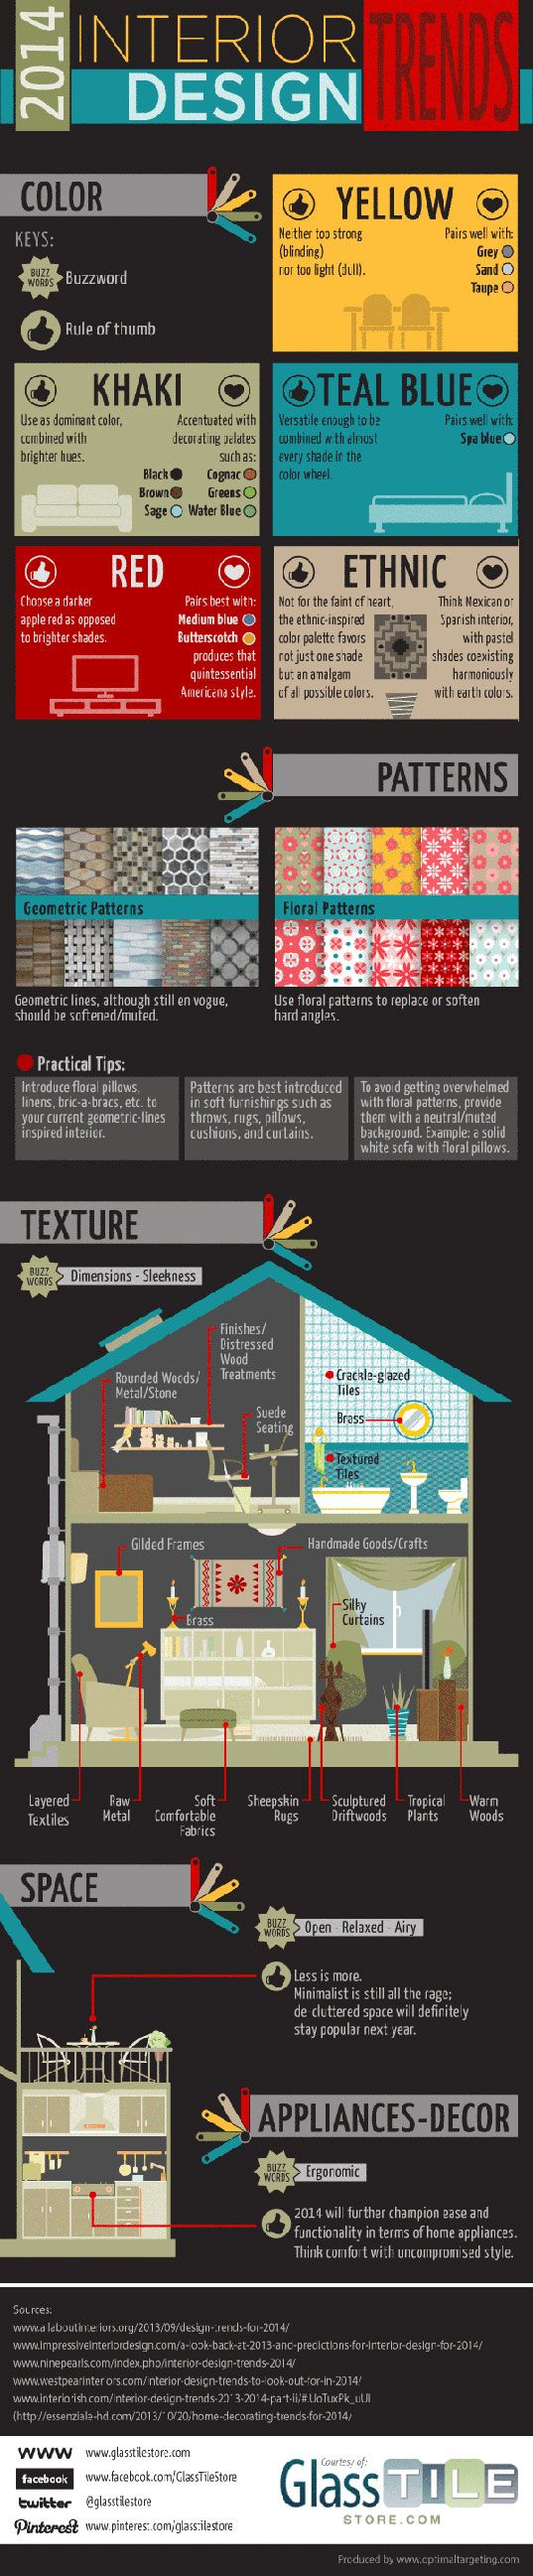 INFOGRAPHIC: Interior Design Trends for 2014 by Roberta Madison, 12/09/13